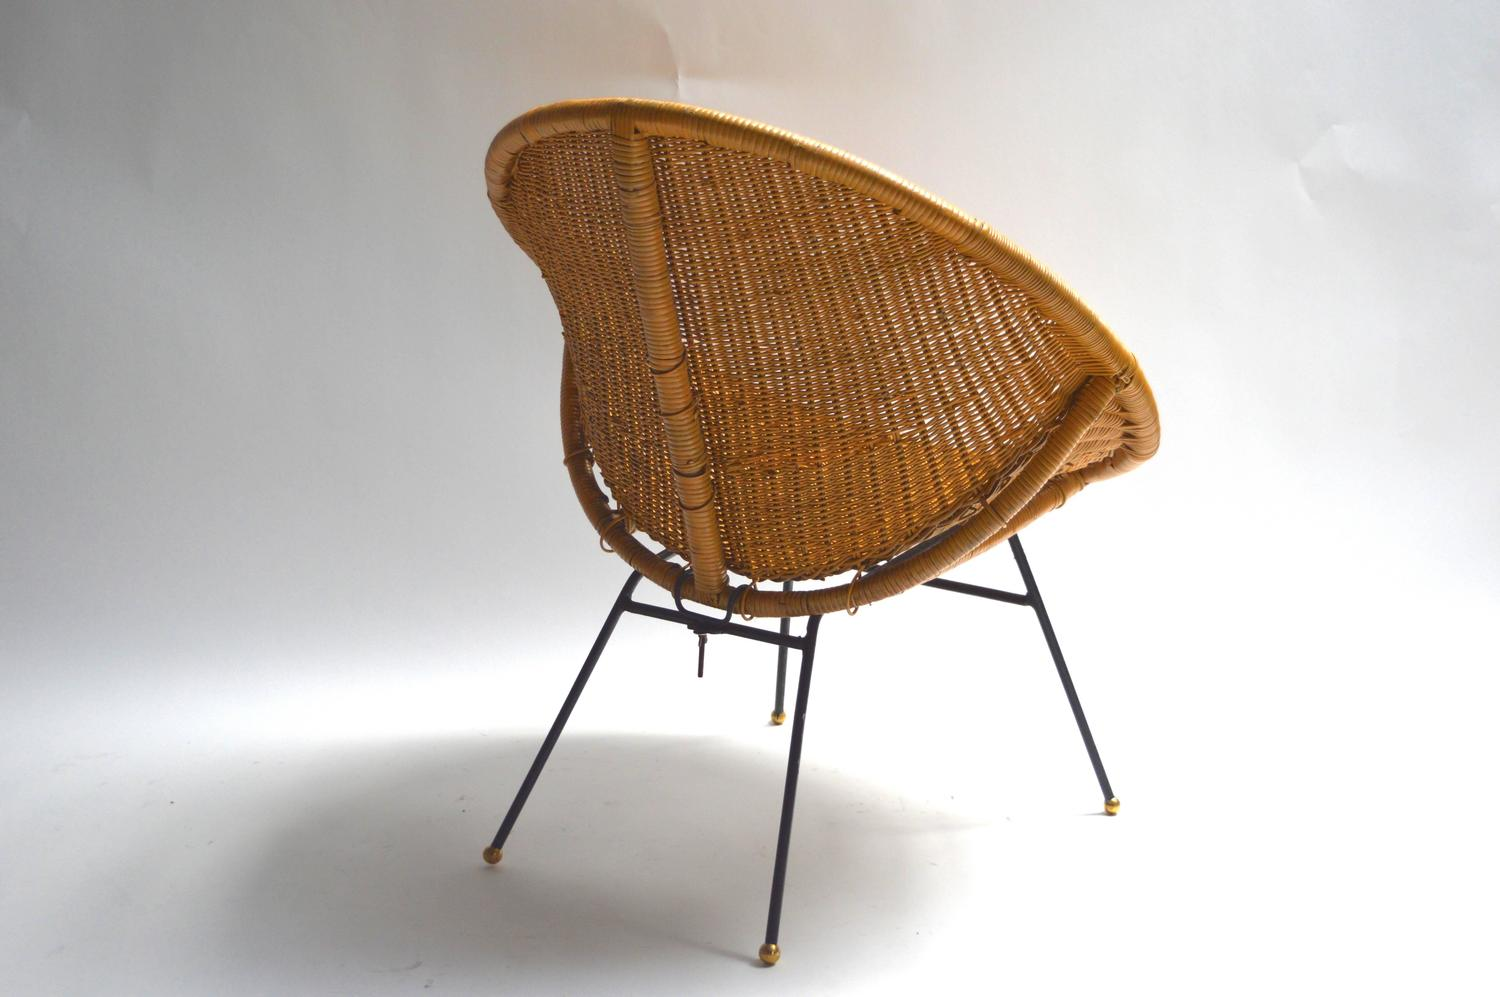 Pod Chairs Pair Of Wicker And Rattan Pod Chairs For Sale At 1stdibs